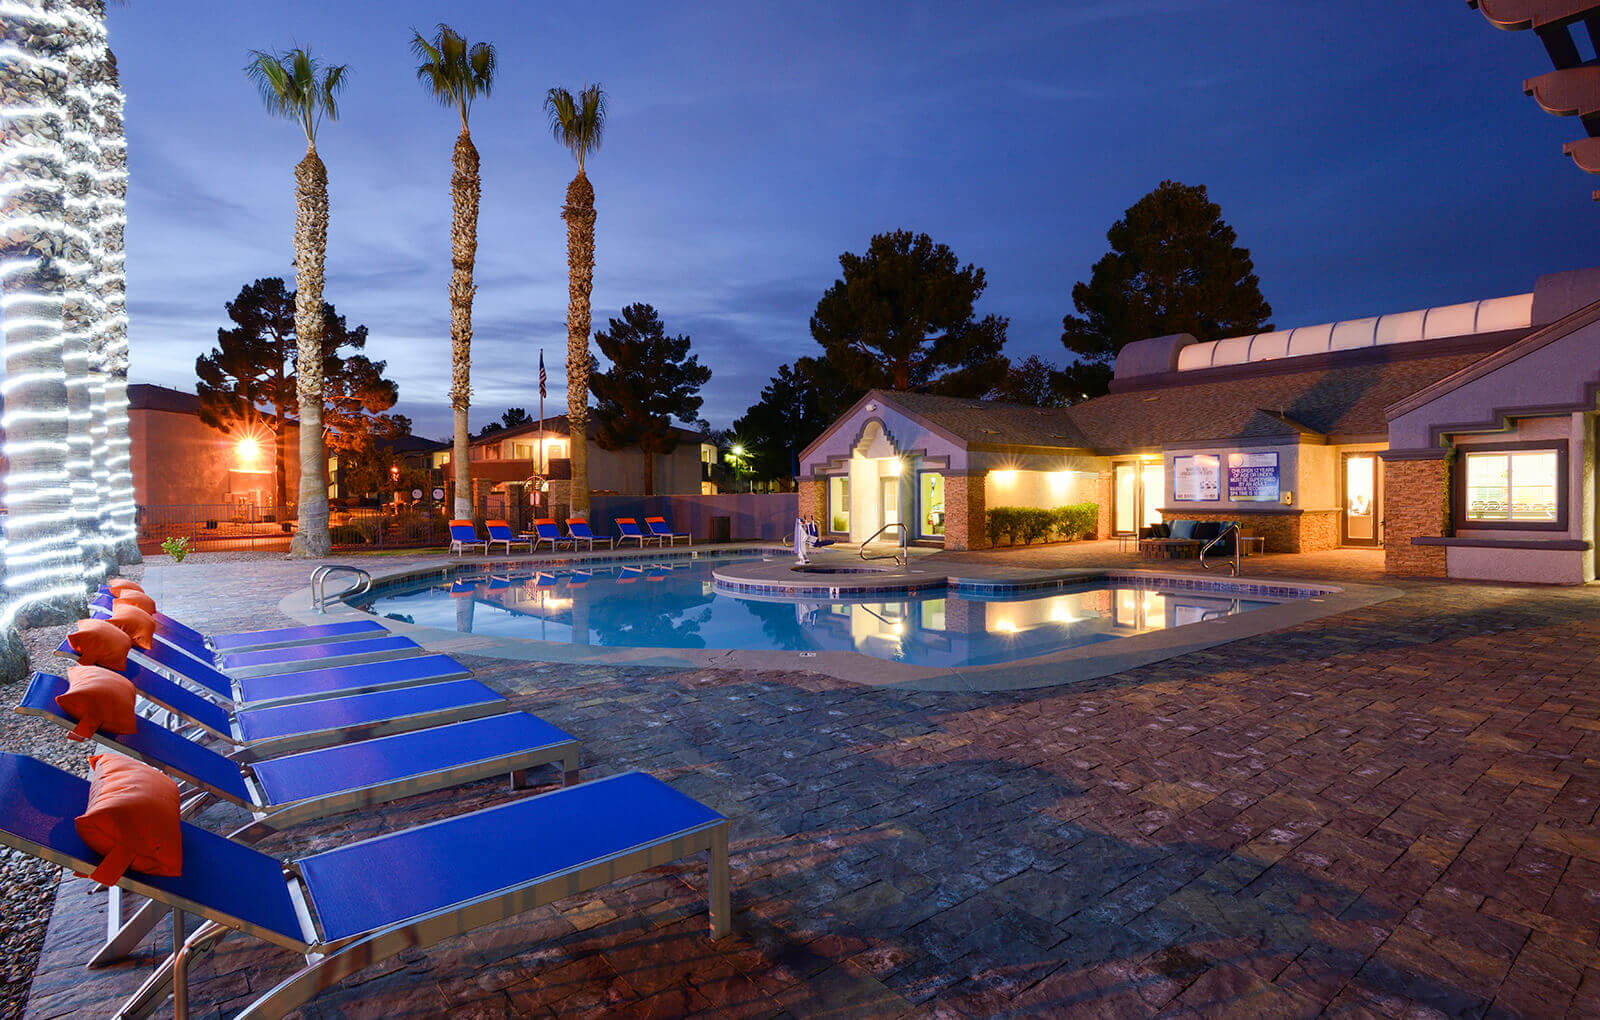 Pool at night, at The Bristol at Sunset, Henderson, Nevada